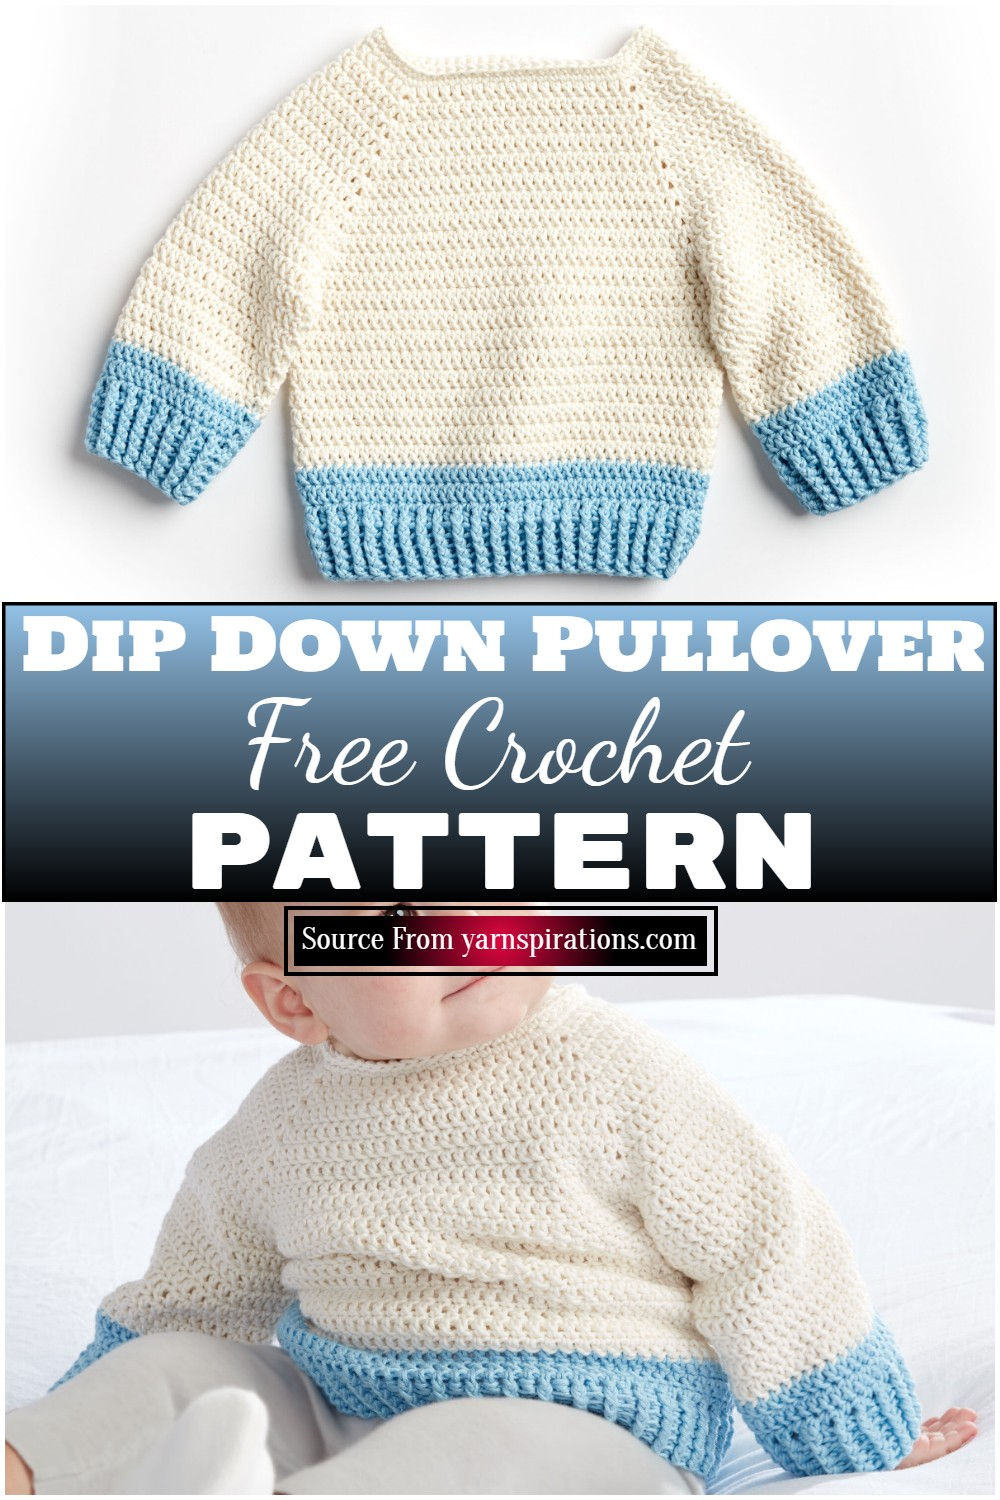 Free Crochet Dip Down Pullover Pattern For Your Baby